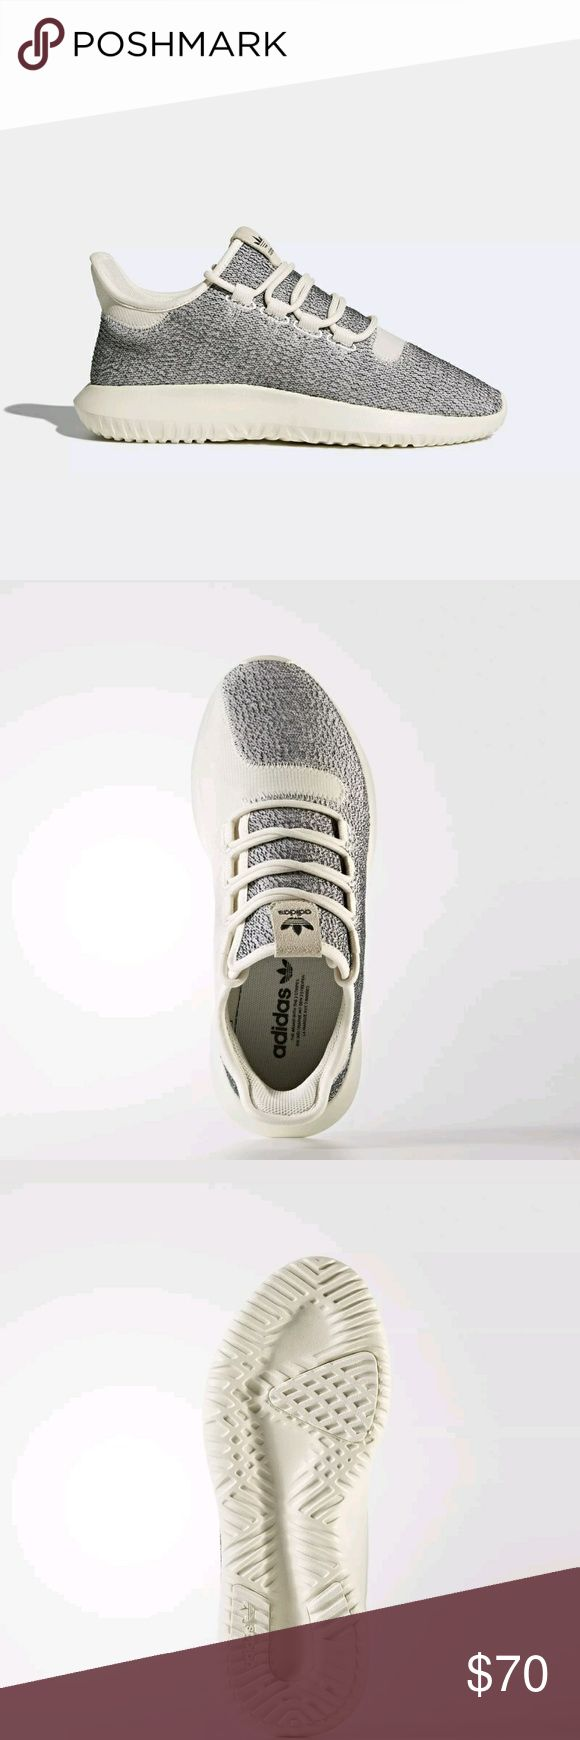 Adidas Tubular Shadow Great trendy shoes! Neutral colors, but not boring. Snug and comfy. THESE RUN LARGE. Will fit someone with a 9.5 shoes size best. New in box. Size 8.5. adidas Shoes Athletic Shoes